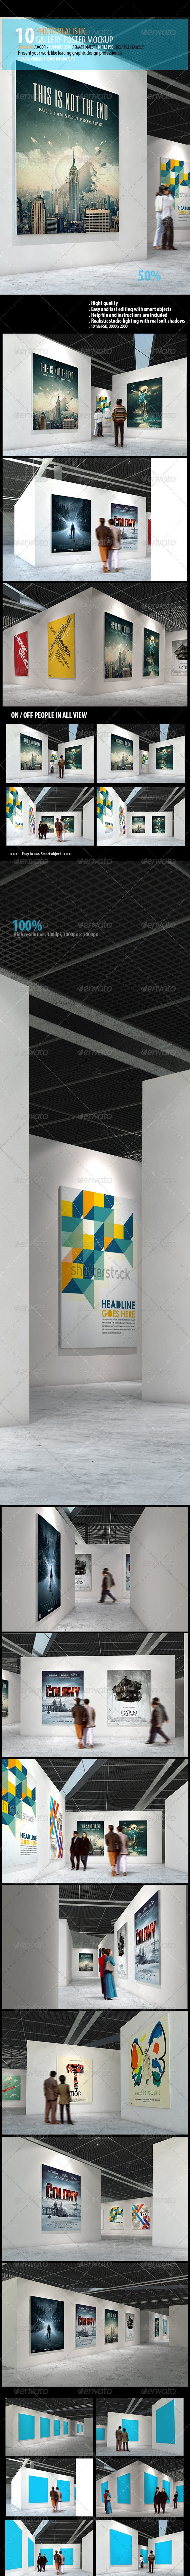 Gallery Poster Mockups - Posters Print